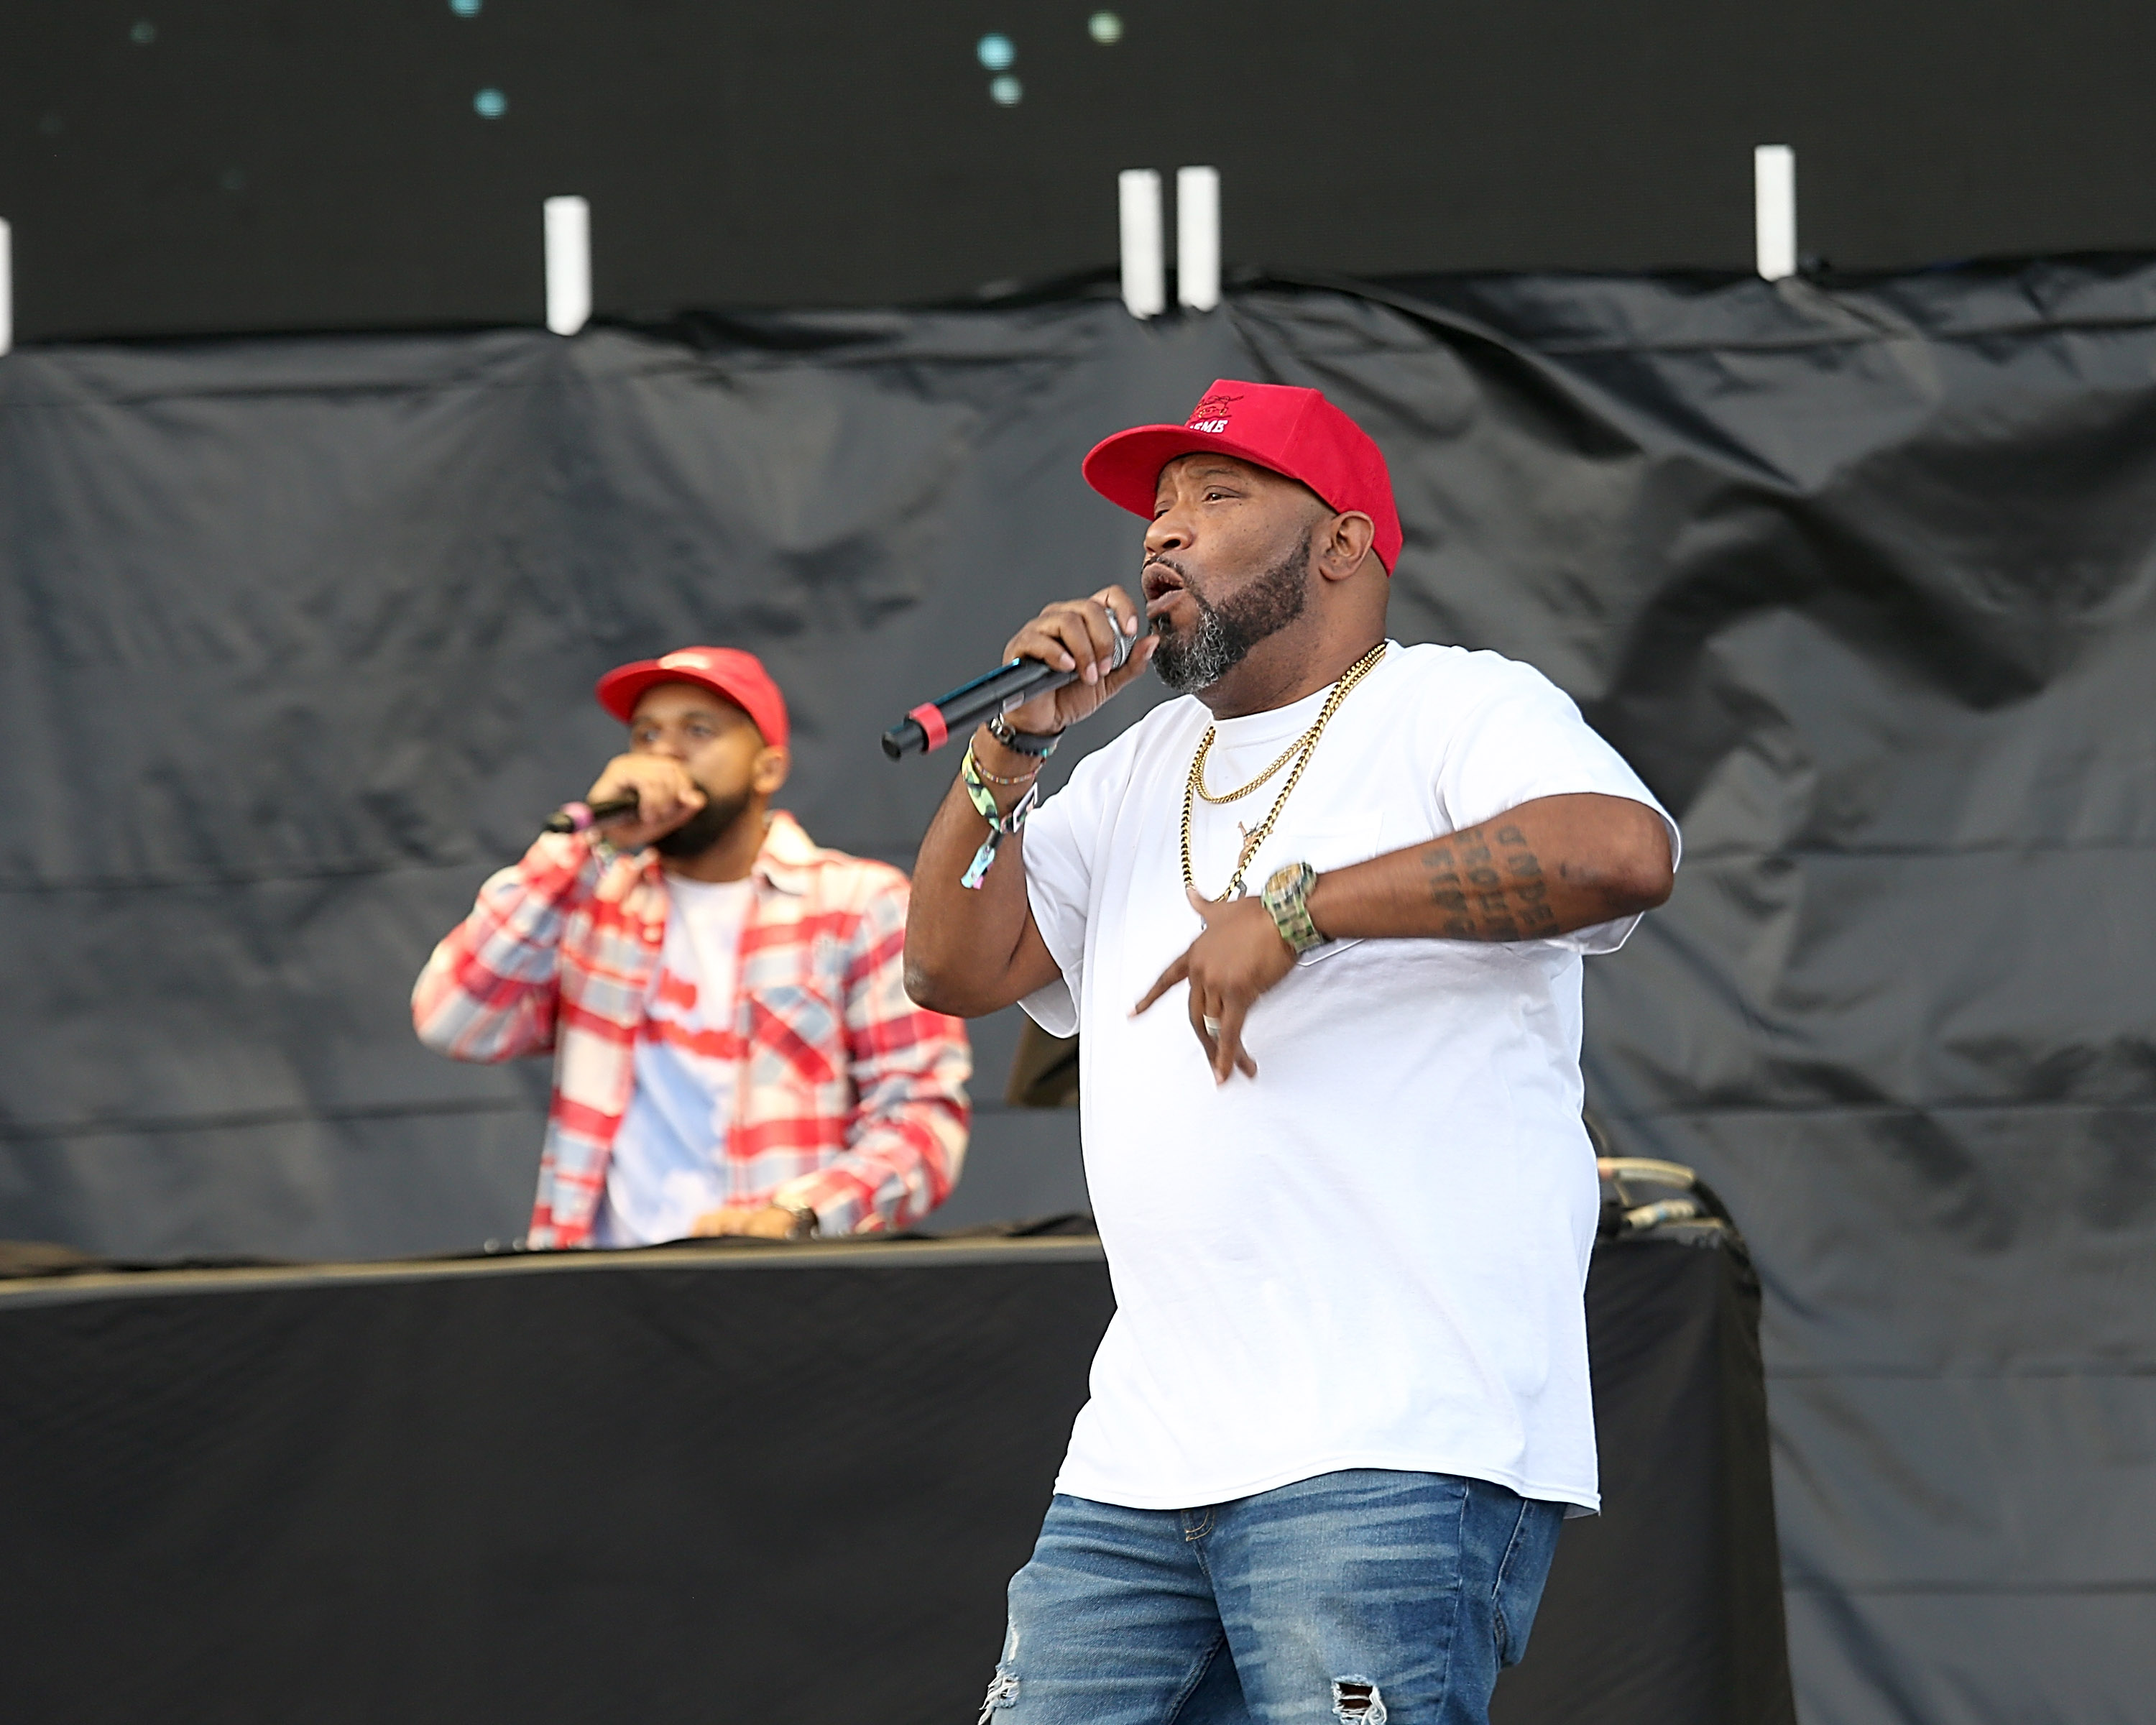 Bun B performing at Astroworld Festival in 2018